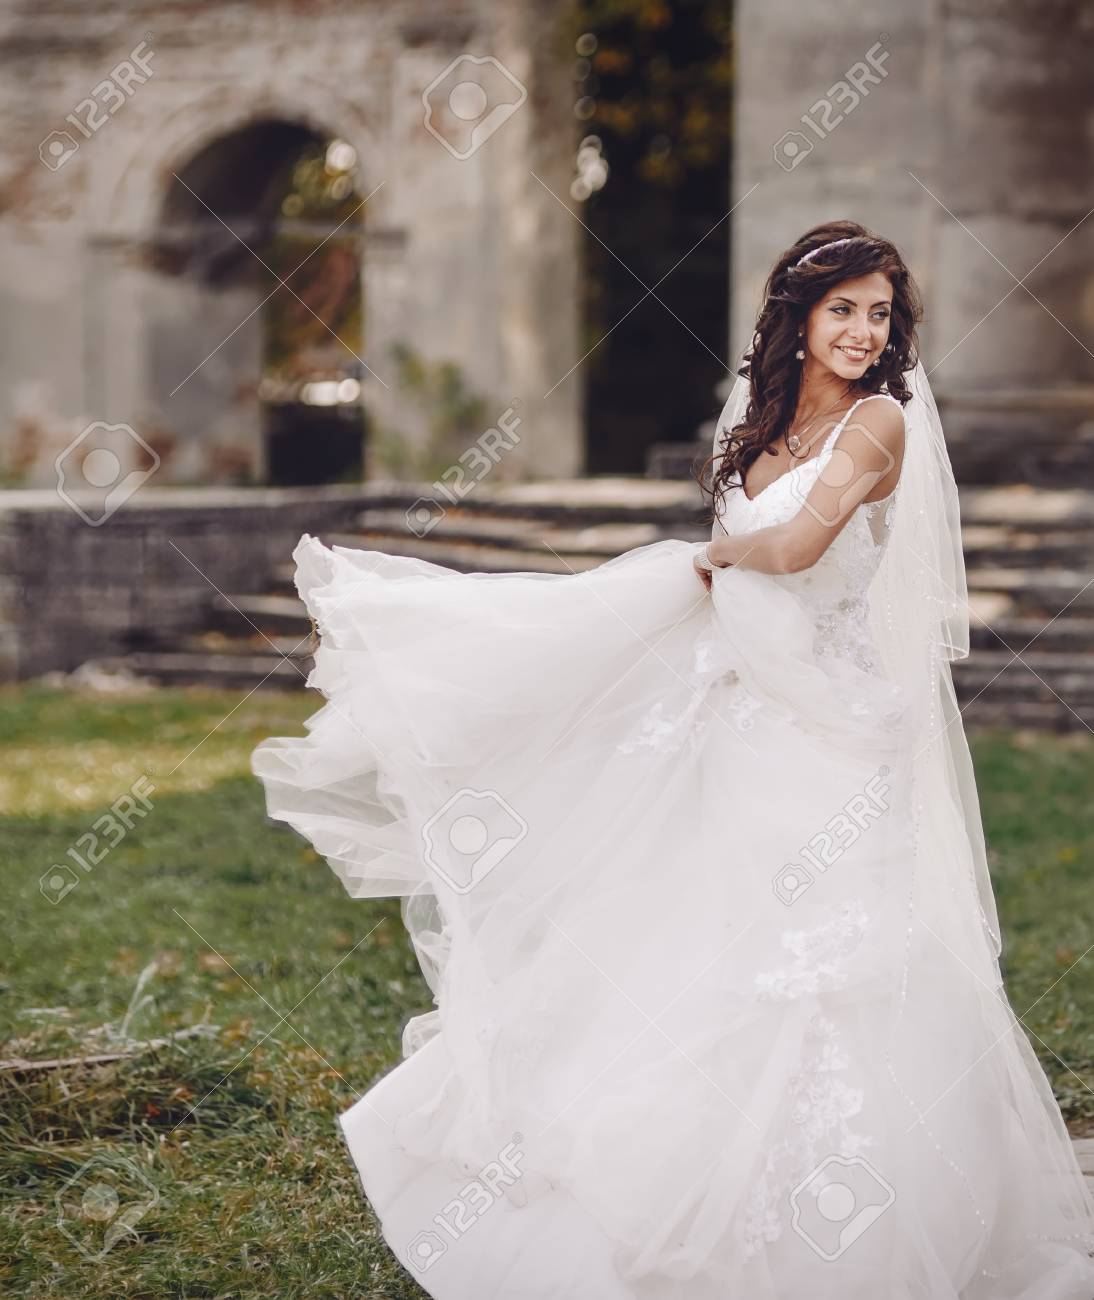 Young Bride Playing With Wedding Dress Next To Ancient Castle Stock ...